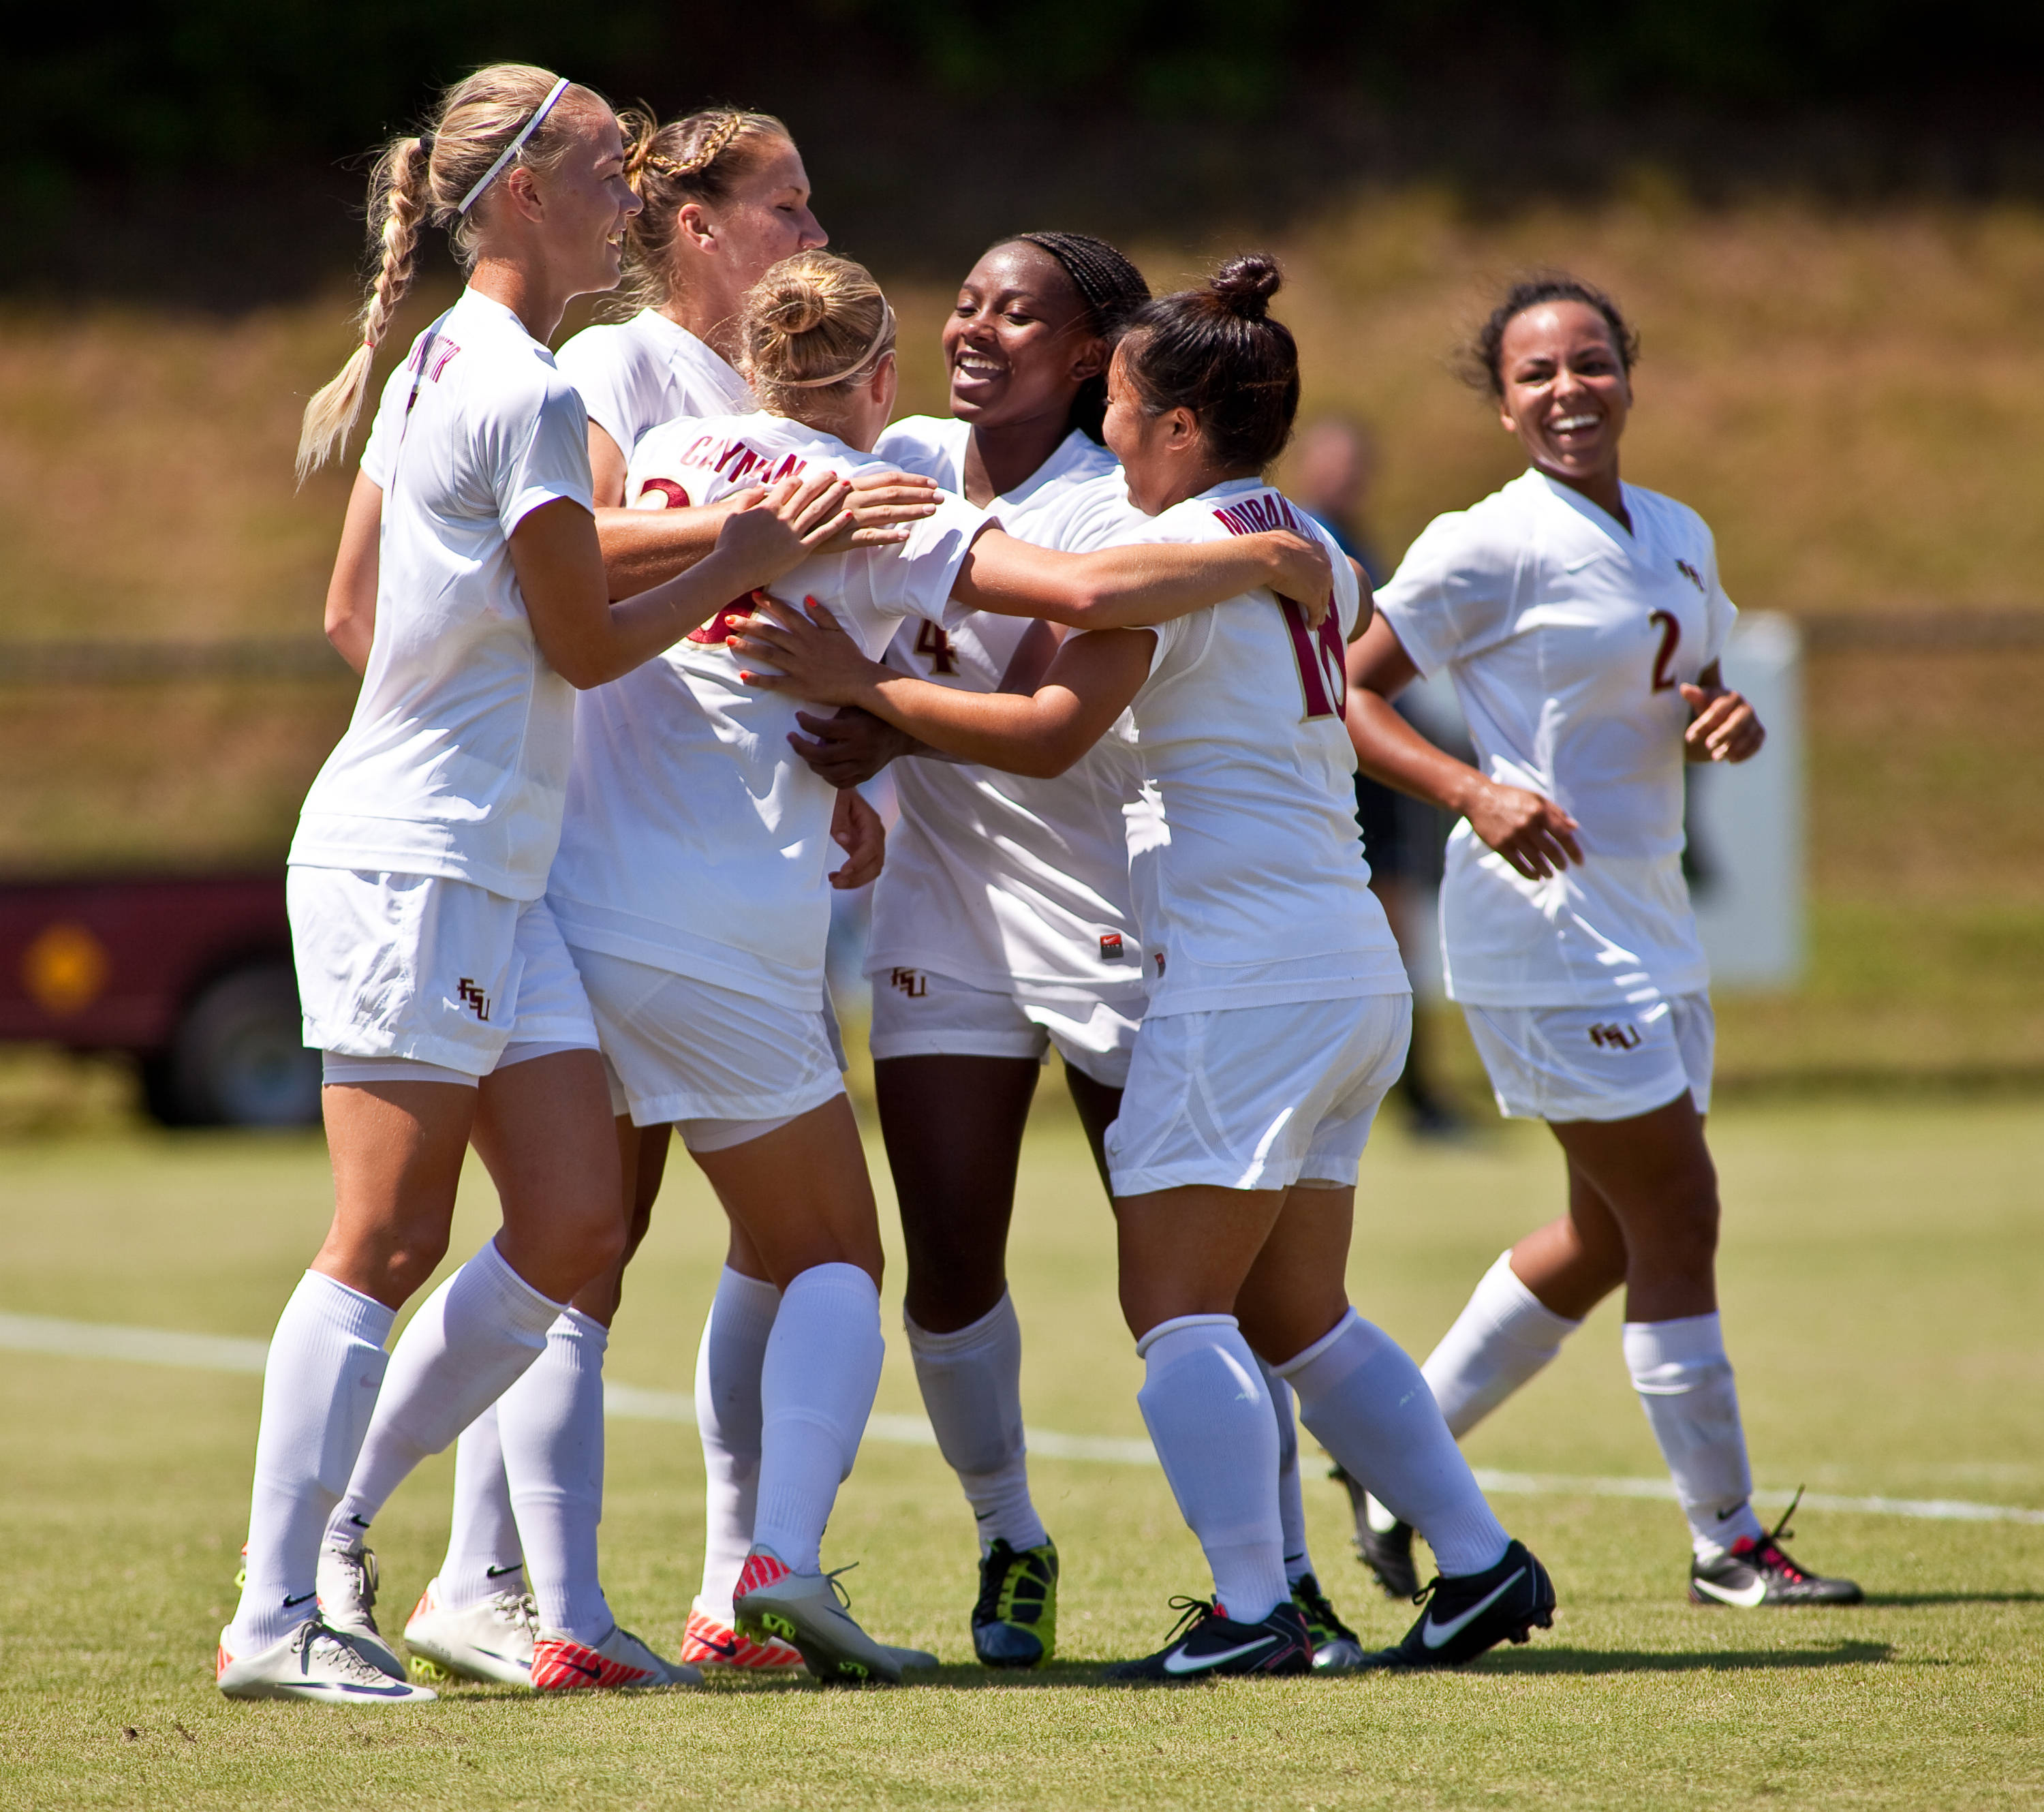 The Noles celebrate after taking a 3-0 lead on Tiana Brockway's first collegiate goal.